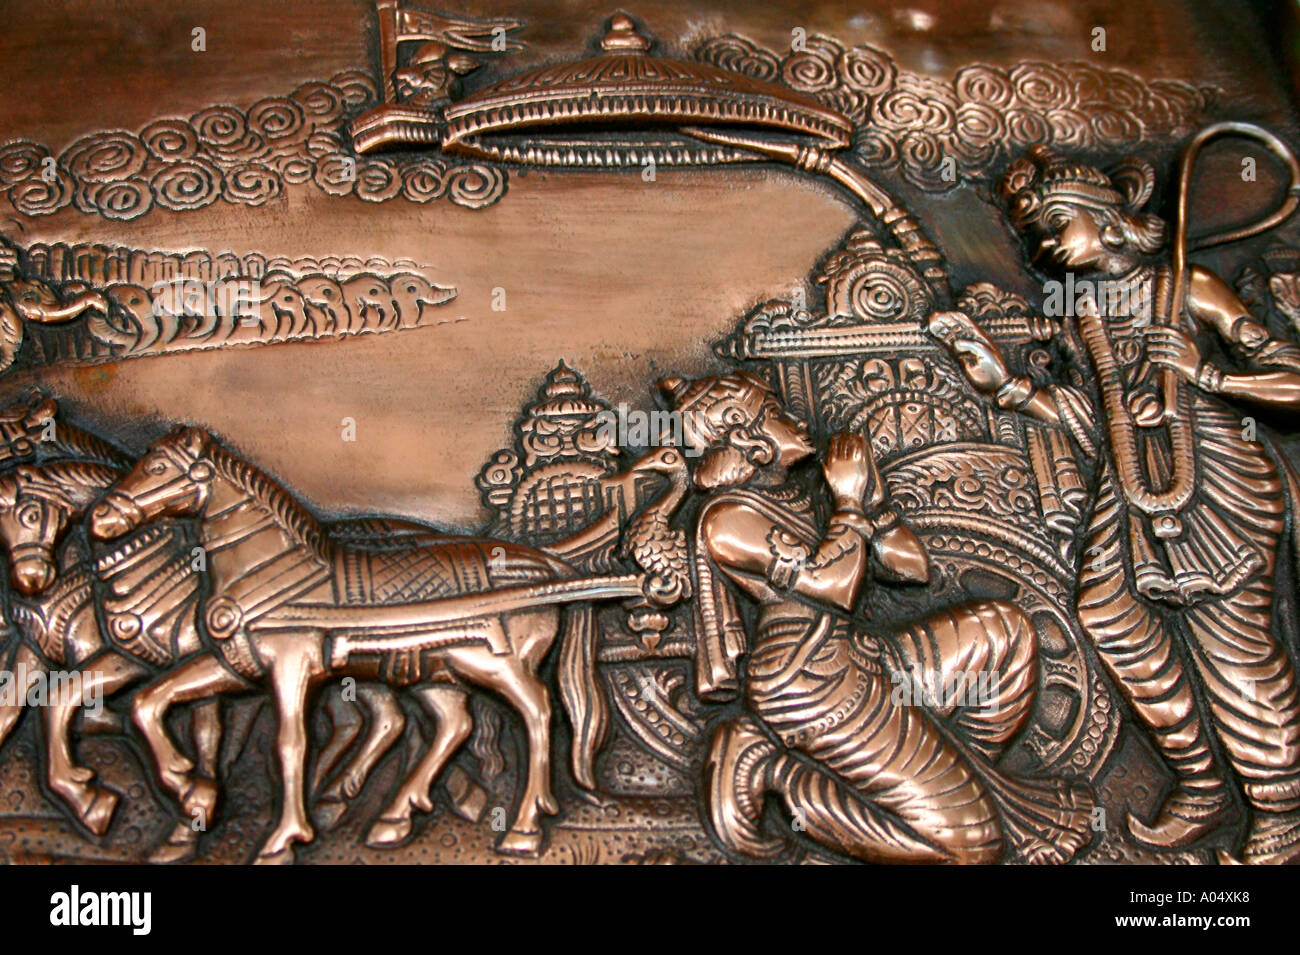 Indian handicraft brass plate depicting the scene from the famous bhagvat geetha - Stock Image